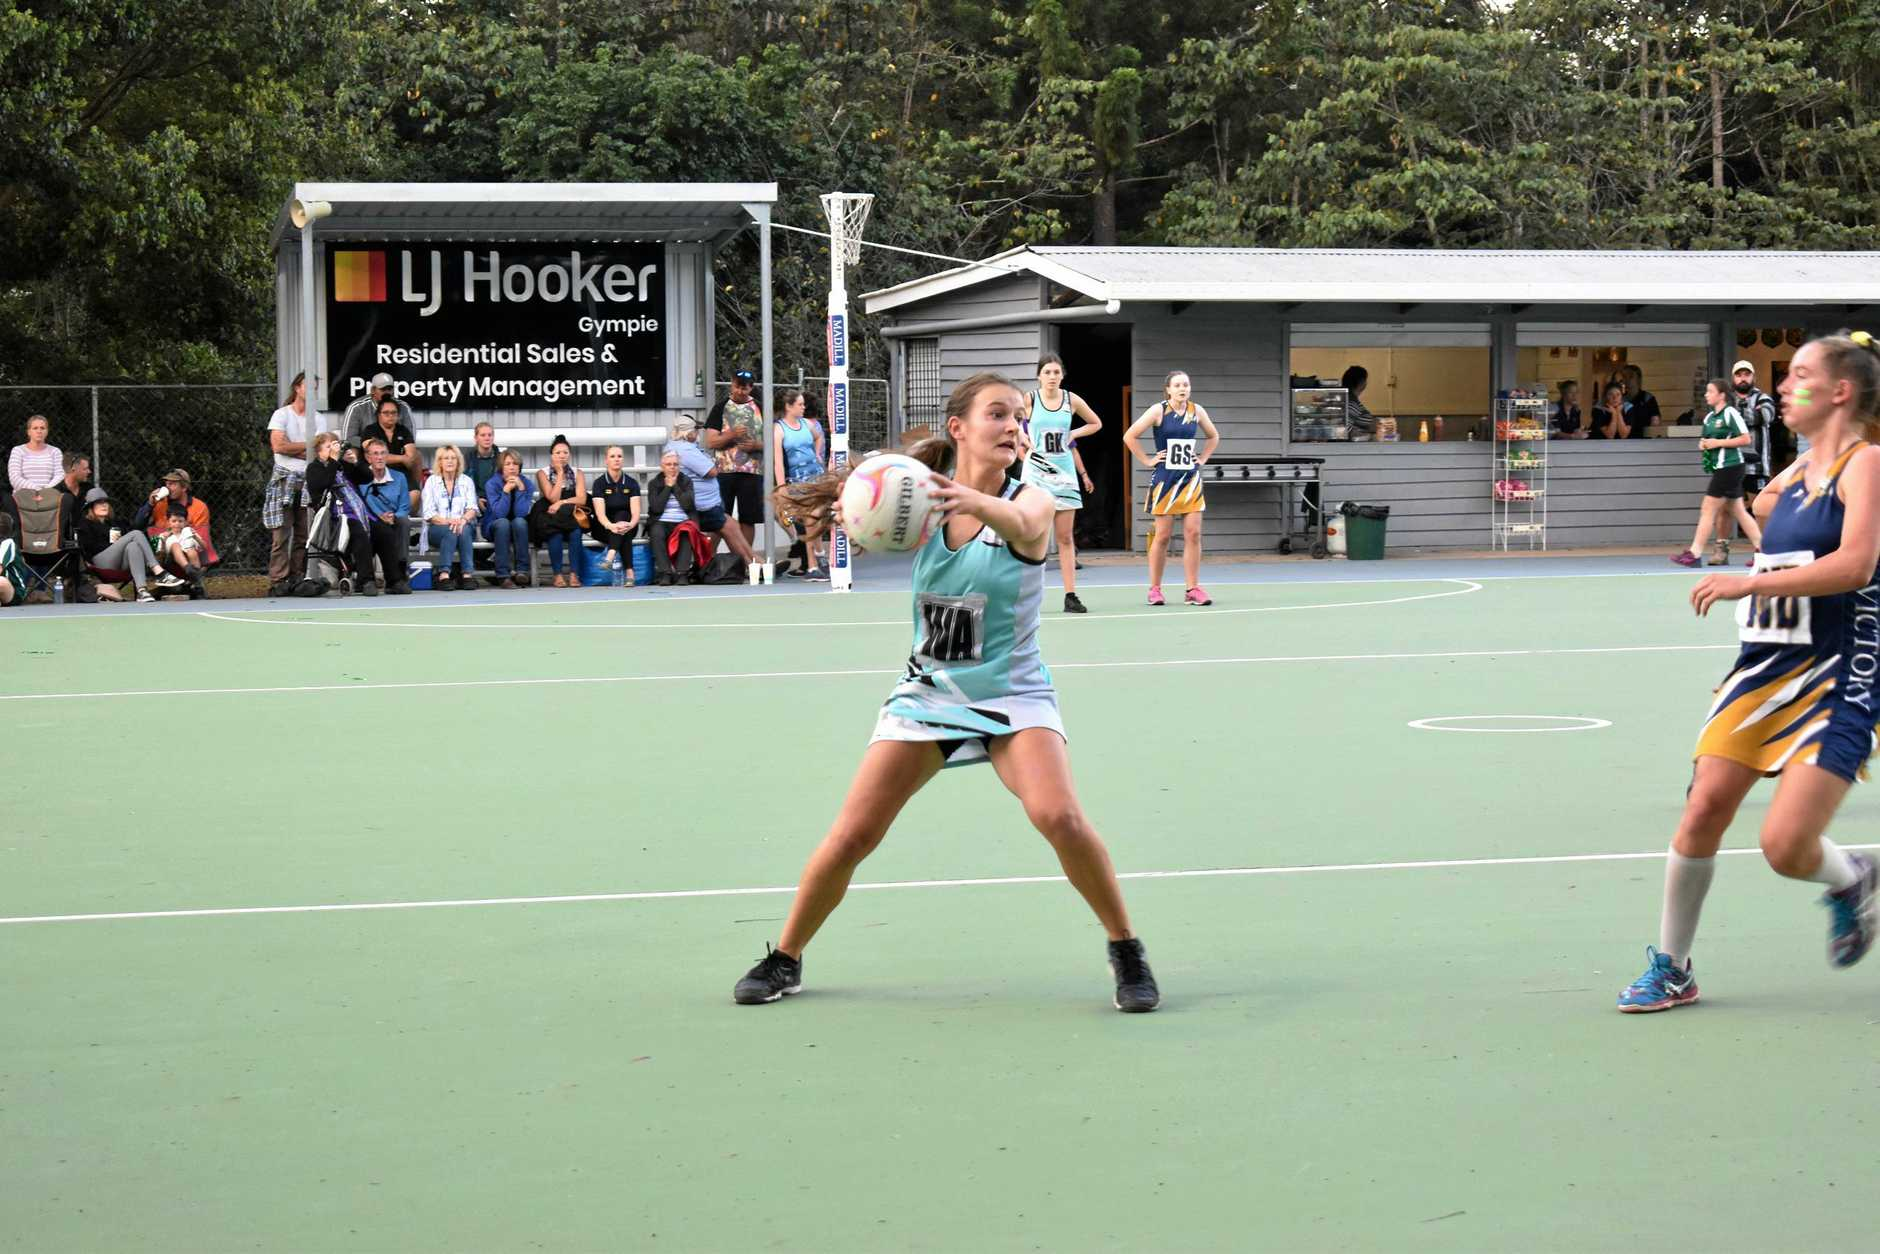 Gympie Junior Netball Grand Finals and Presentation. Maddi Panetta from A Grade Flares.